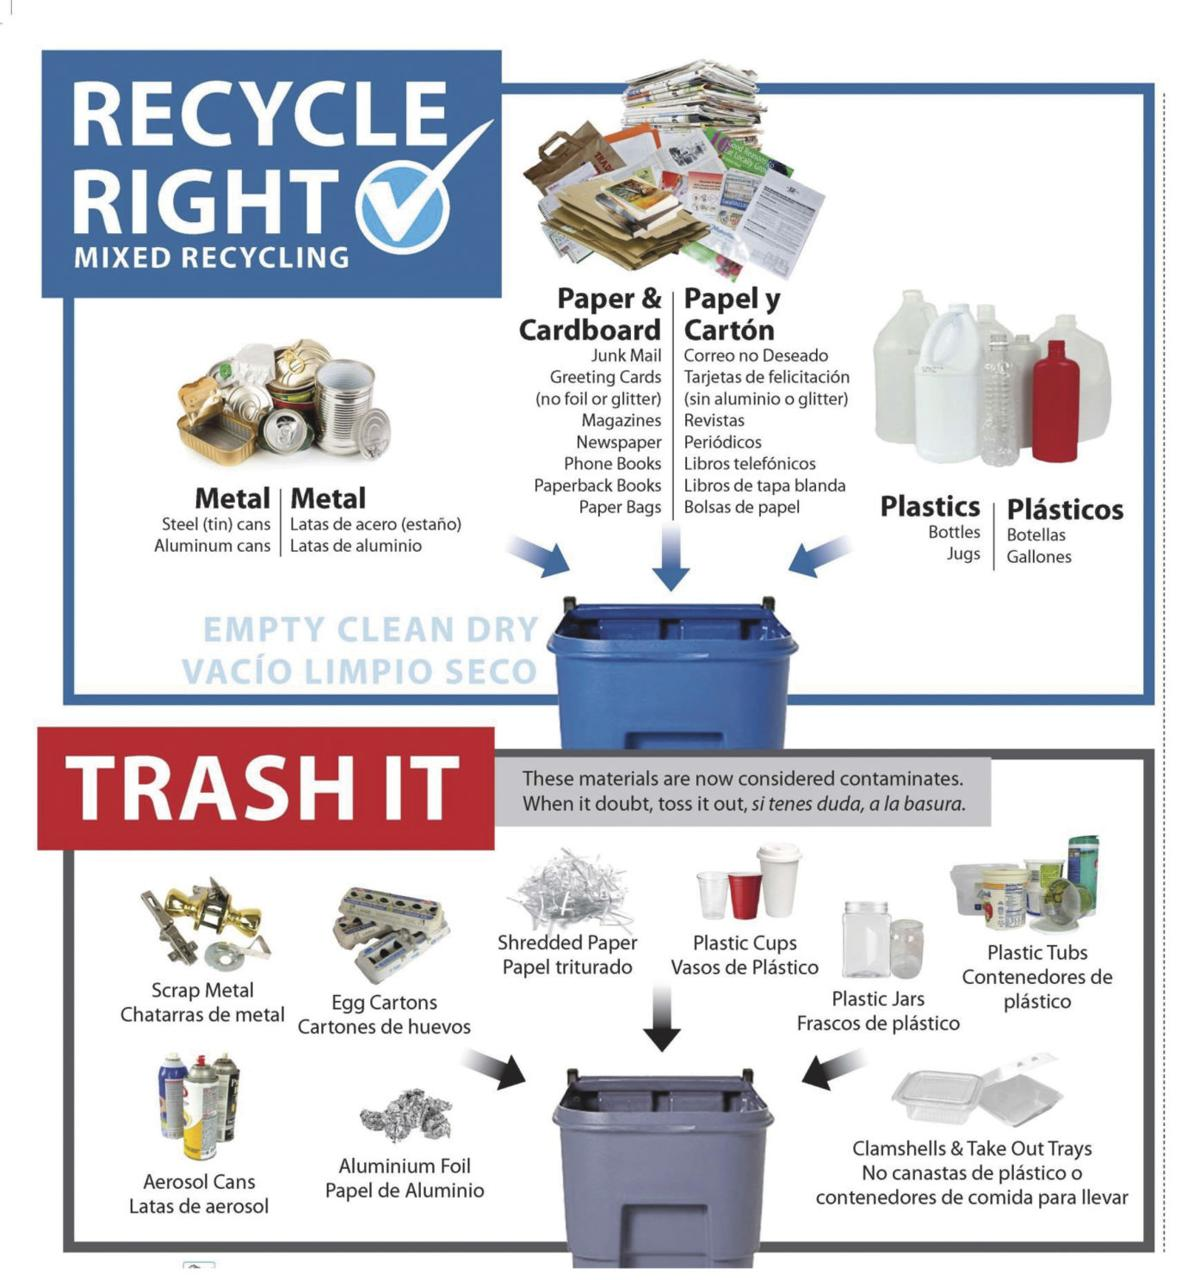 Brandt's outlines new recycling rules